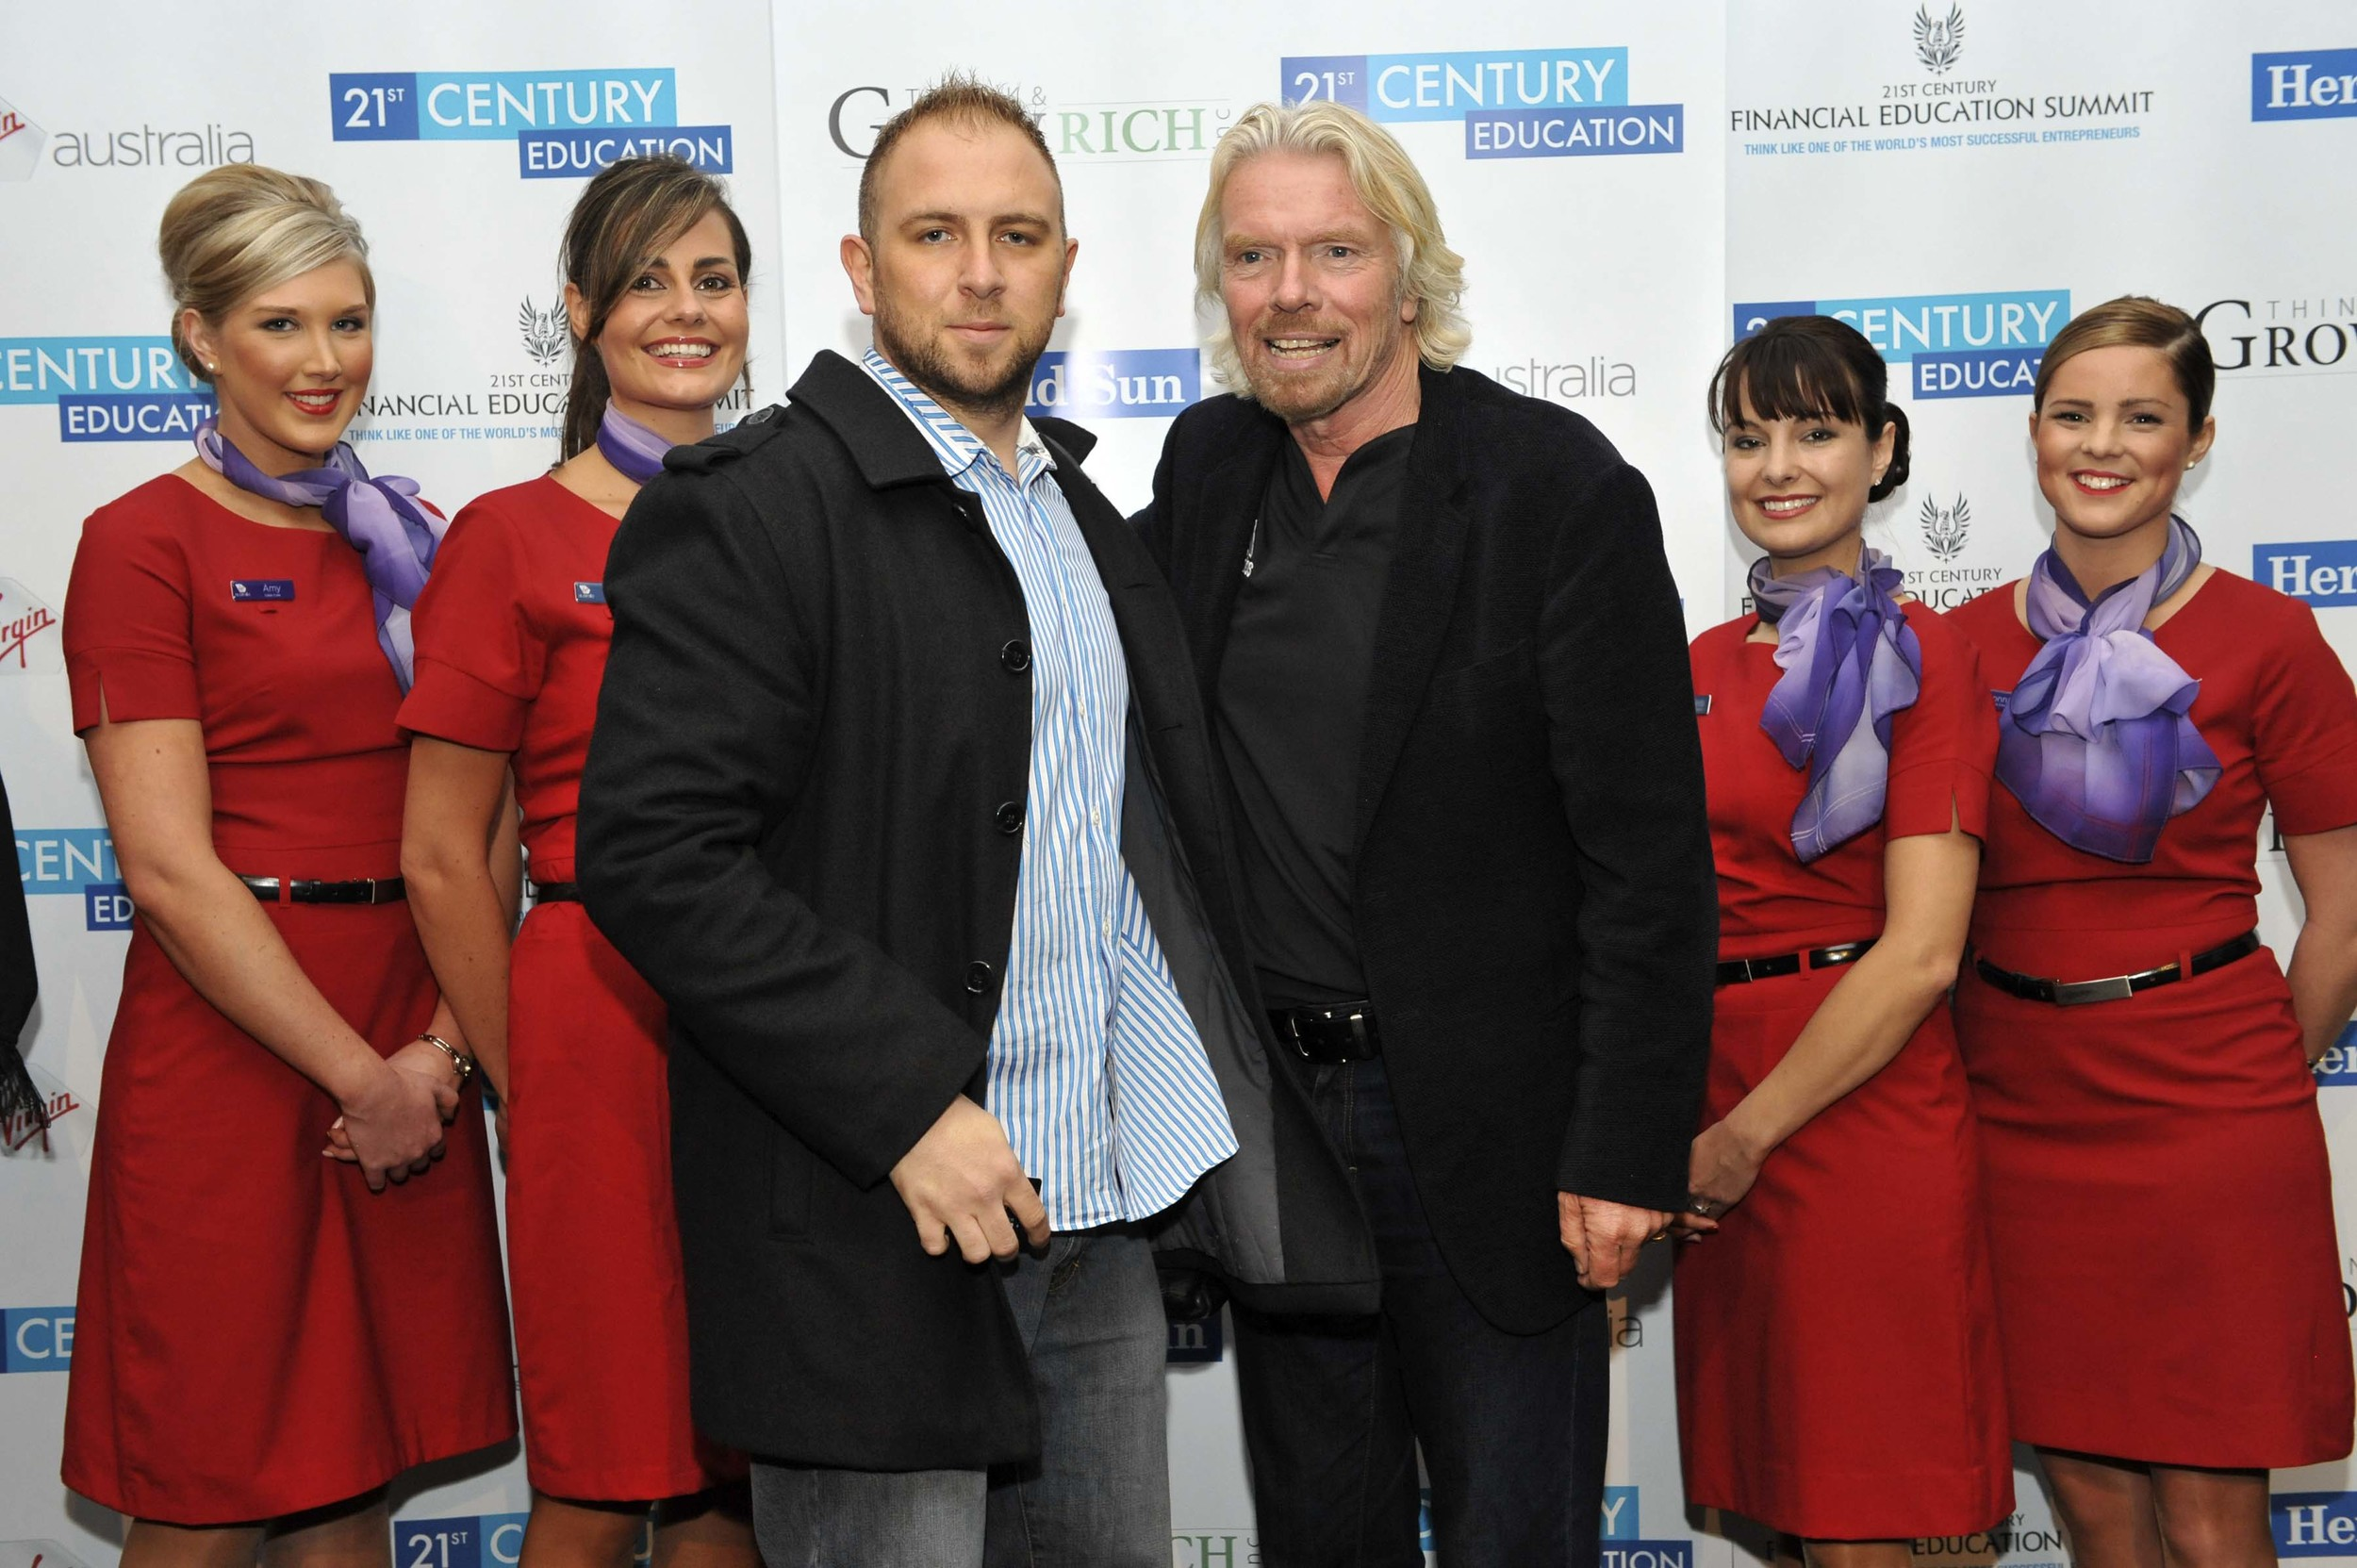 Sir Richard Branson // Founder of Virgin